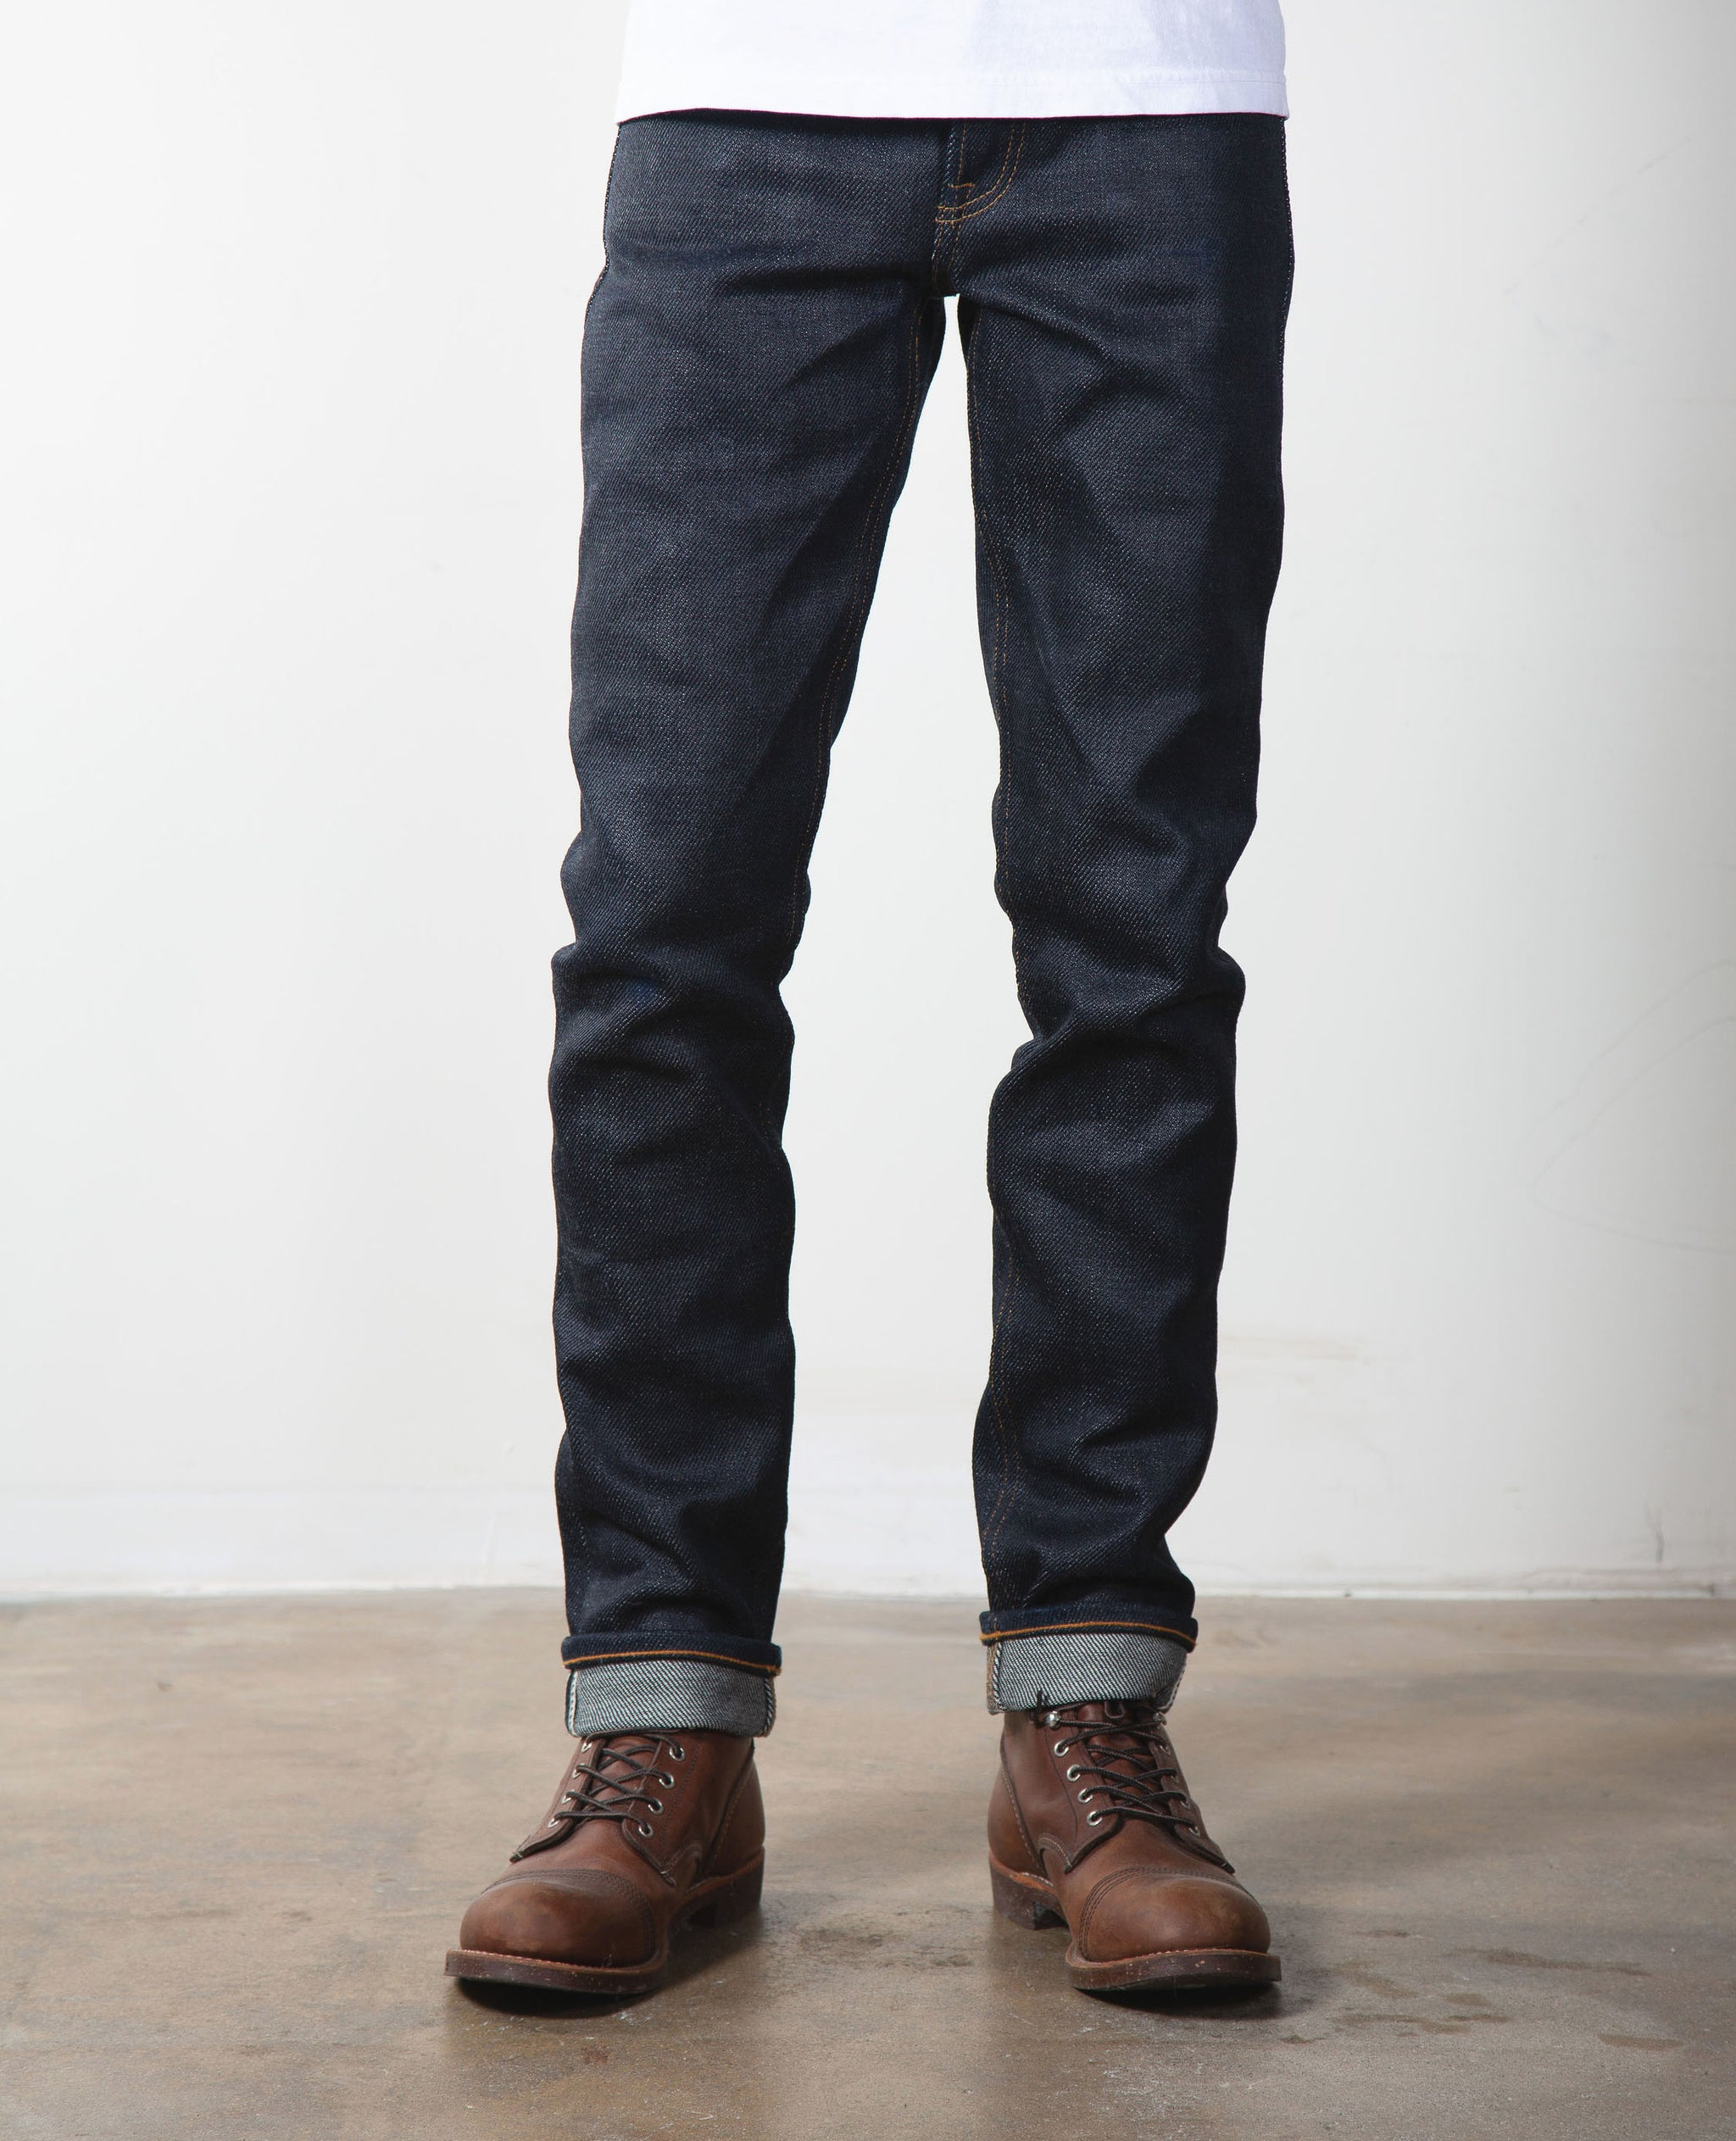 6145708063a Affordable Selvedge Denim   Brave Star Selvage Jeans Factory